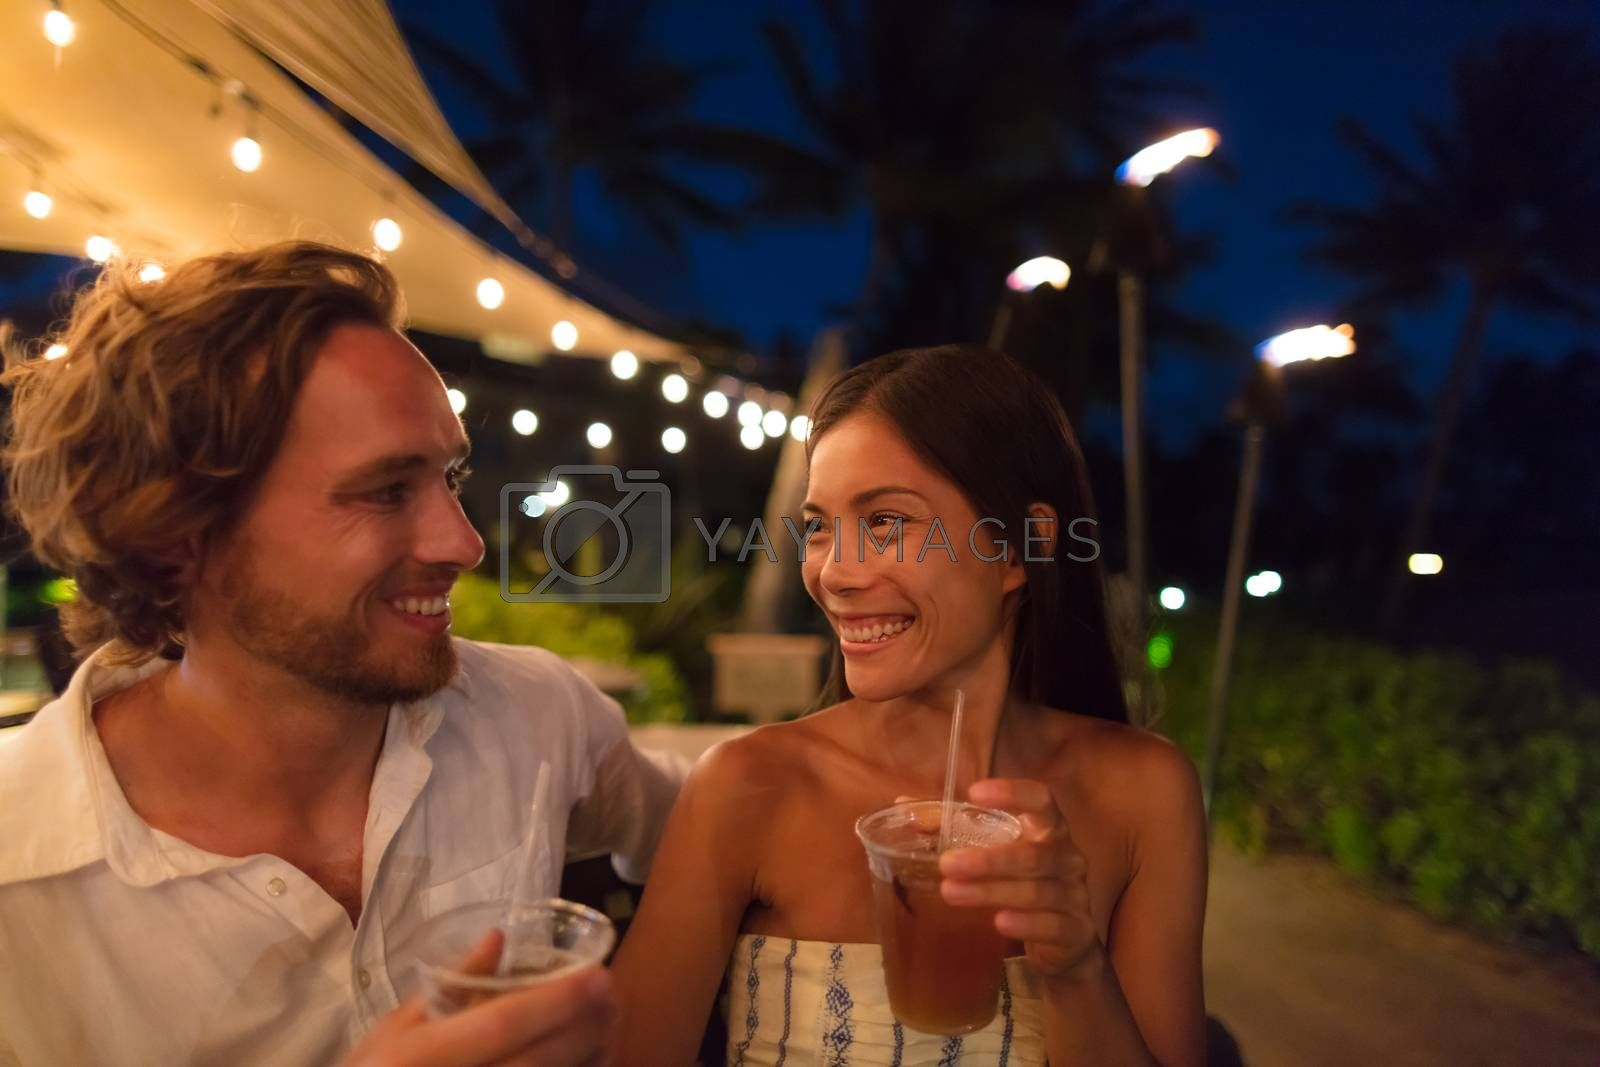 Couple dating drinking at bar on night out at outdoor restaurant terrace in Hawaii vacation travel. Asian woman, man having fun together toasting mai tai drinks, hawaiian cocktail. Luxury lifestyle by Maridav